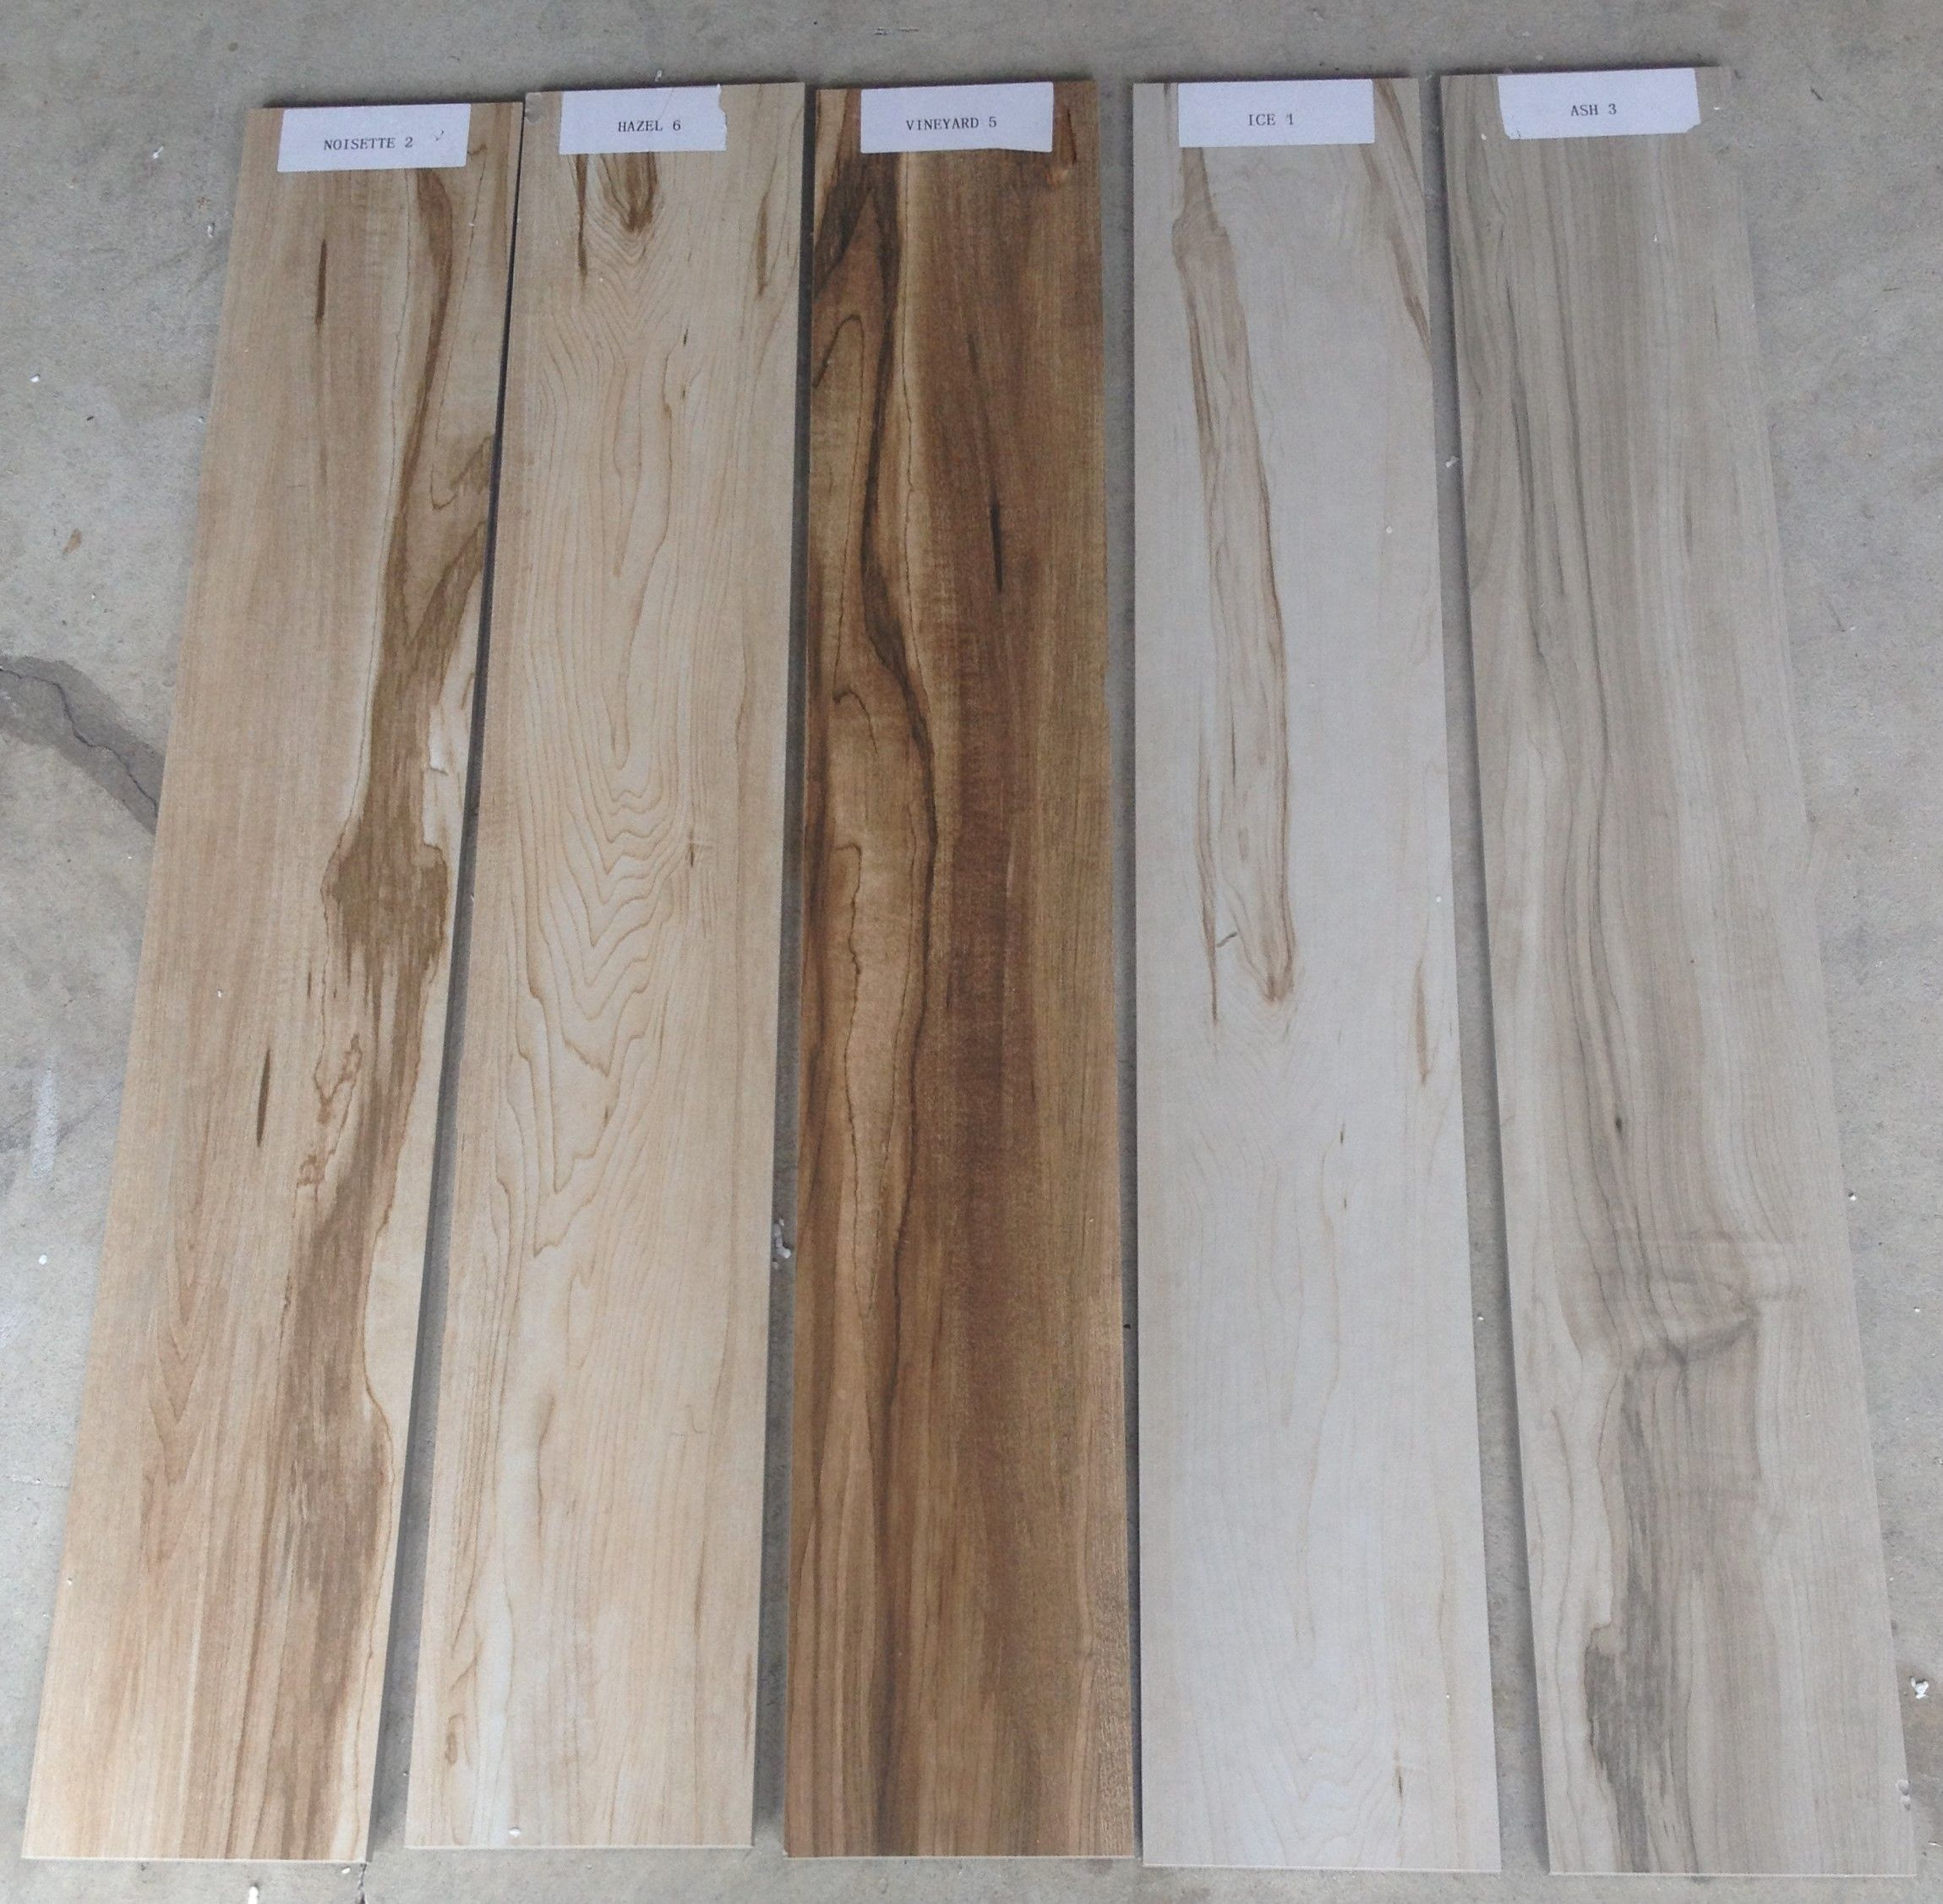 Four Wood Plank Tile Trends from Coverings 2014 Wood